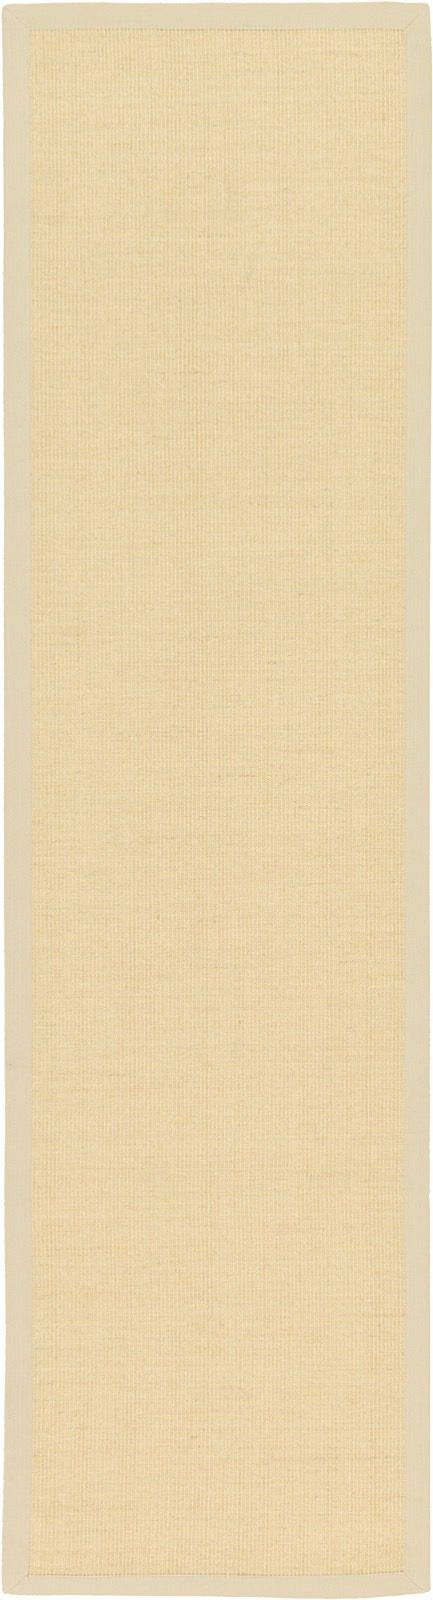 unique loom sisal solid/striped area rug collection